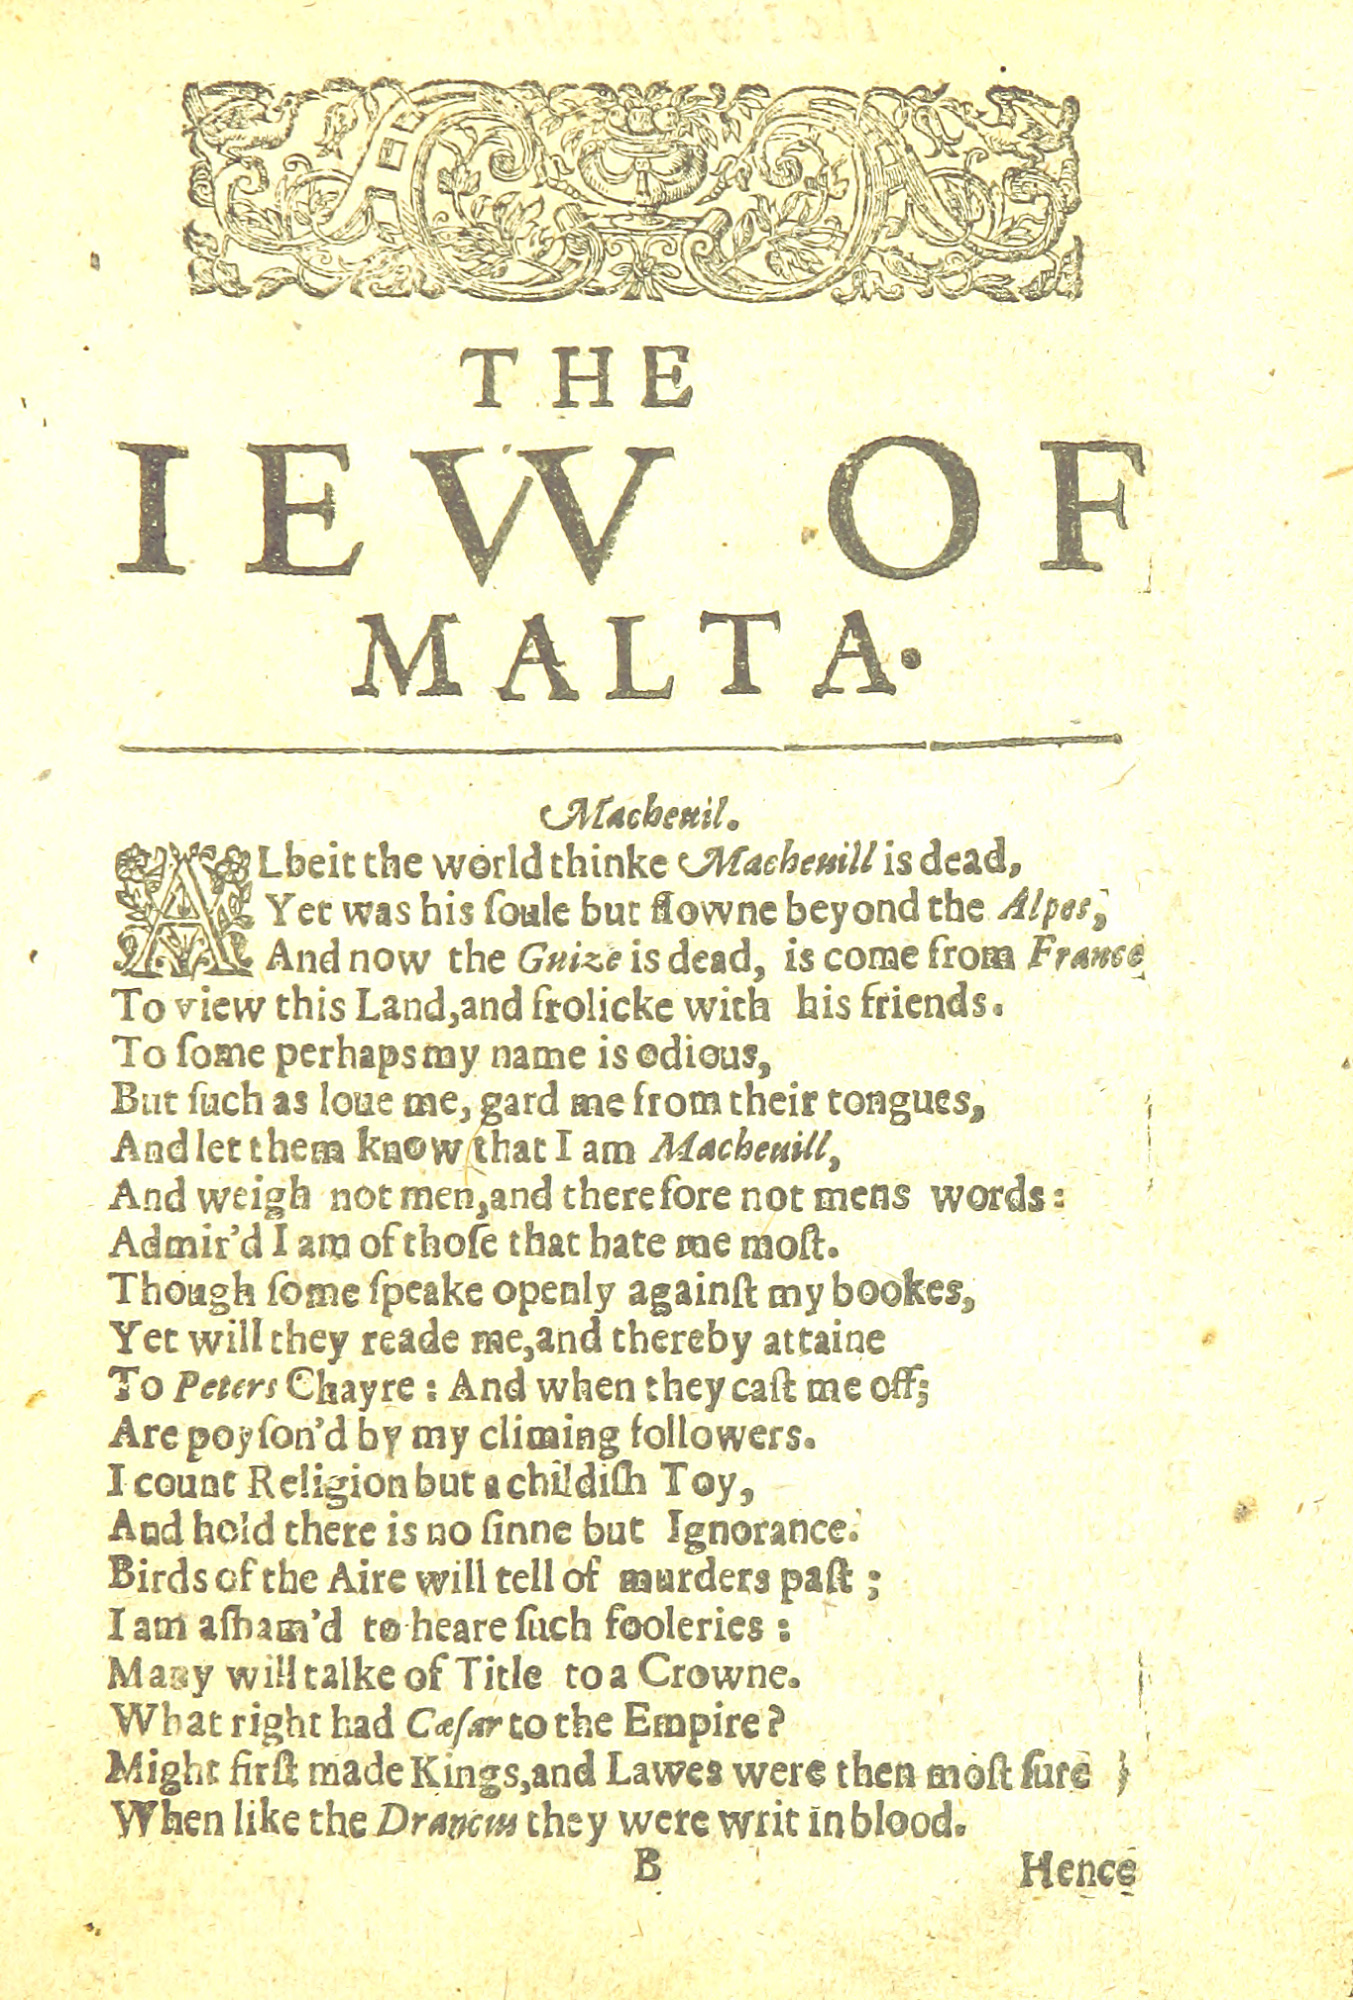 Marlowe's The Jew of Malta